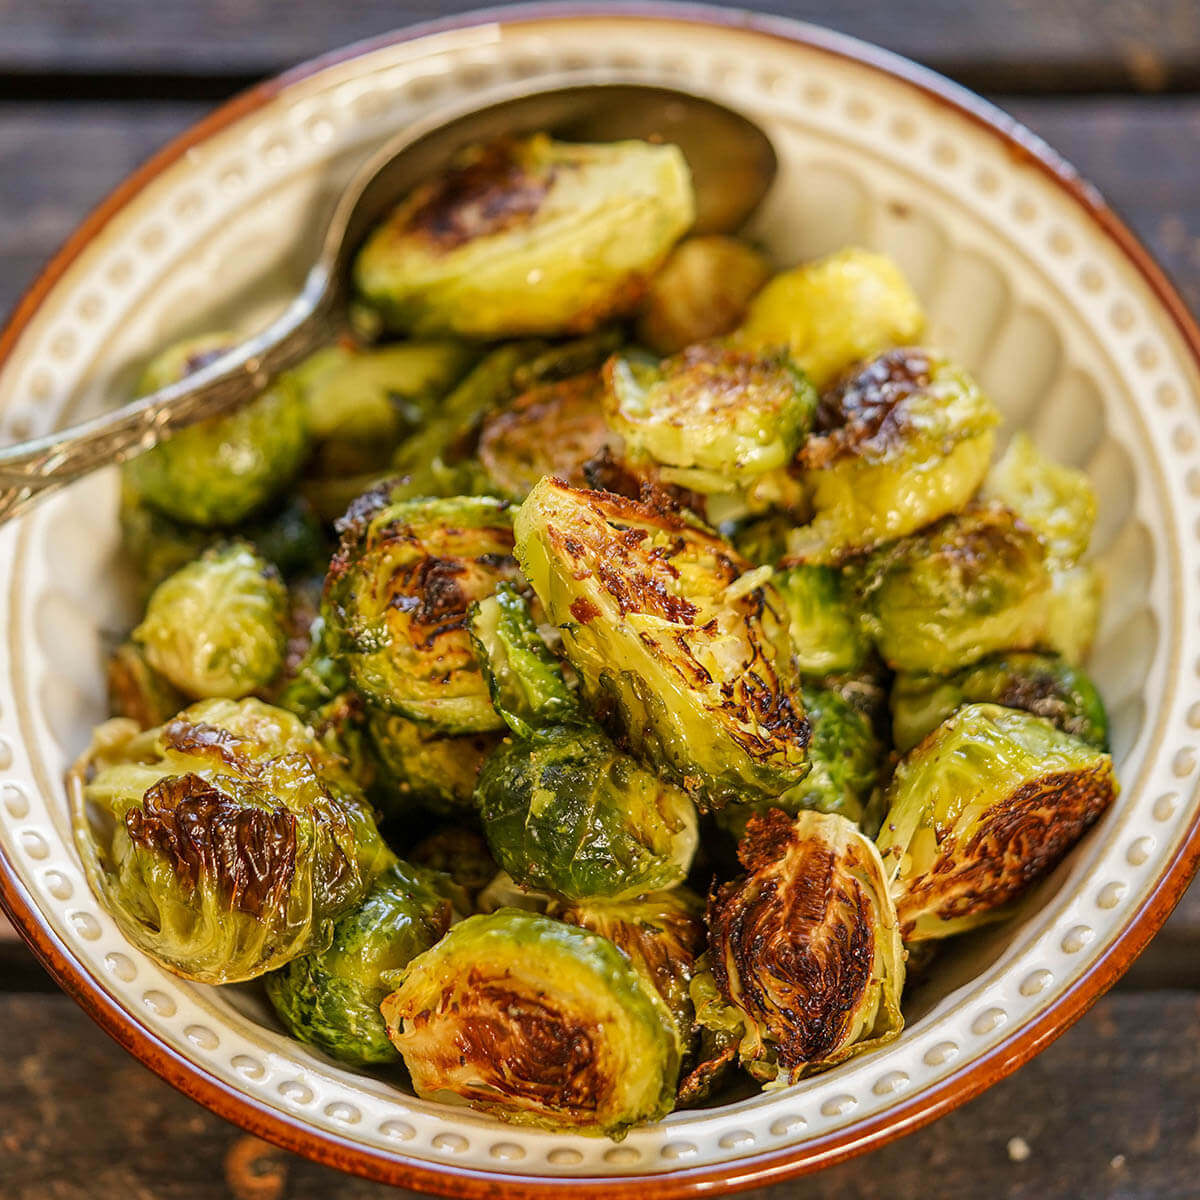 Roasted Brussel Sprouts in bowl with spoon.